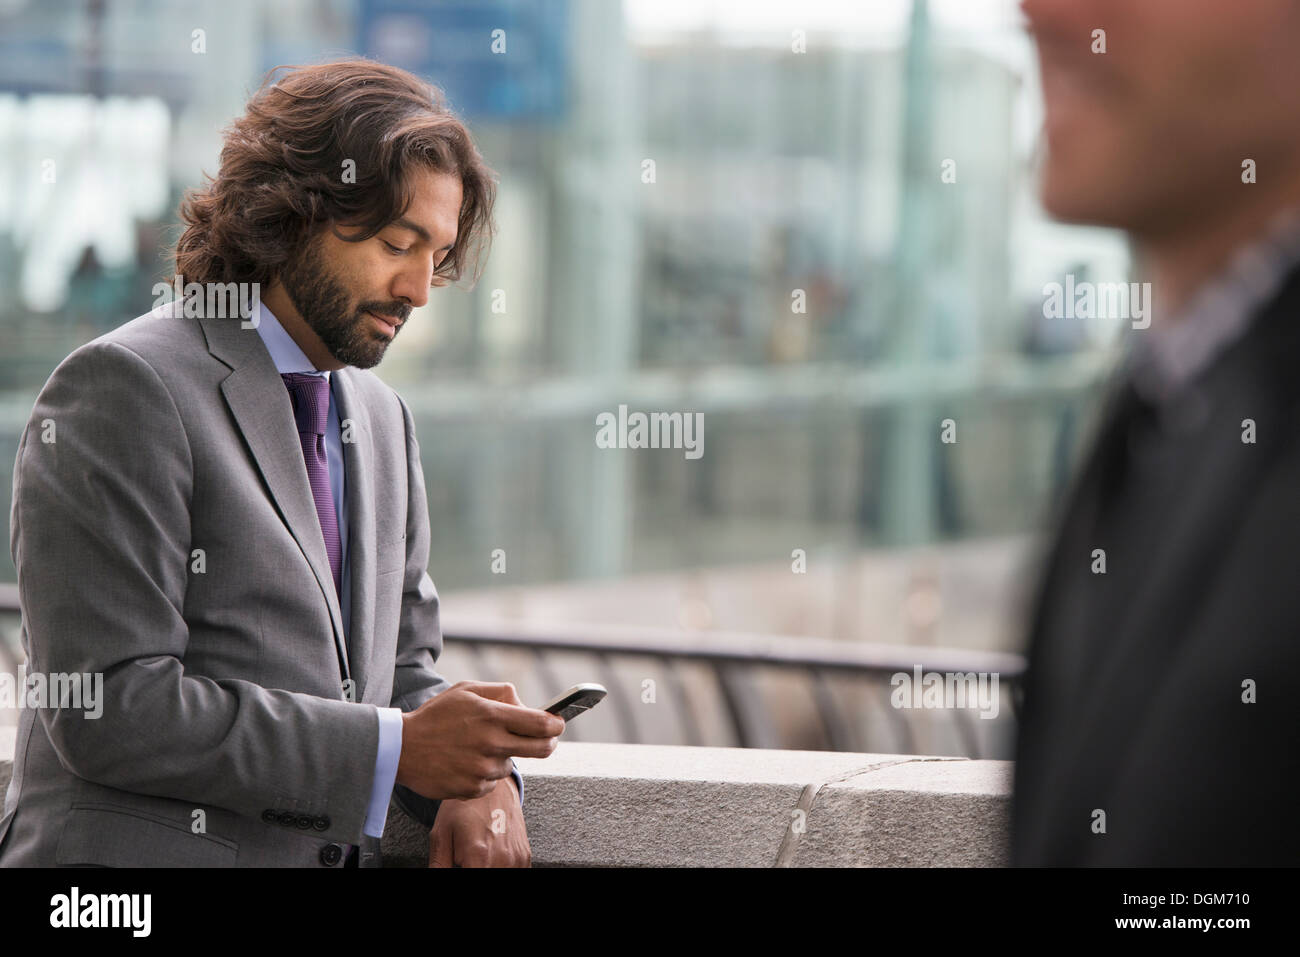 Two men in business suits, on a terrace with a railing. One checking his phone. - Stock Image